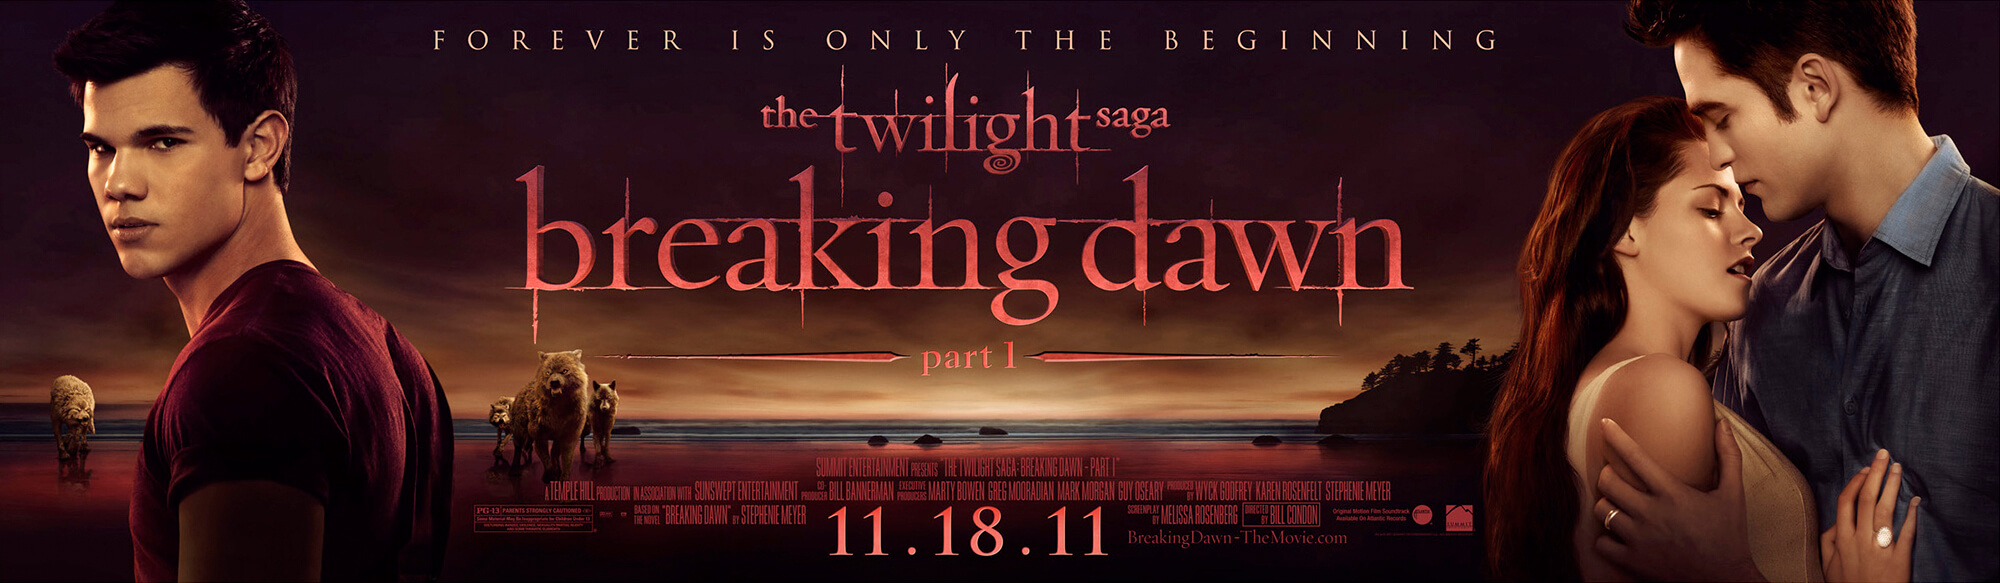 Twi_BreakDawn1_horiz_full